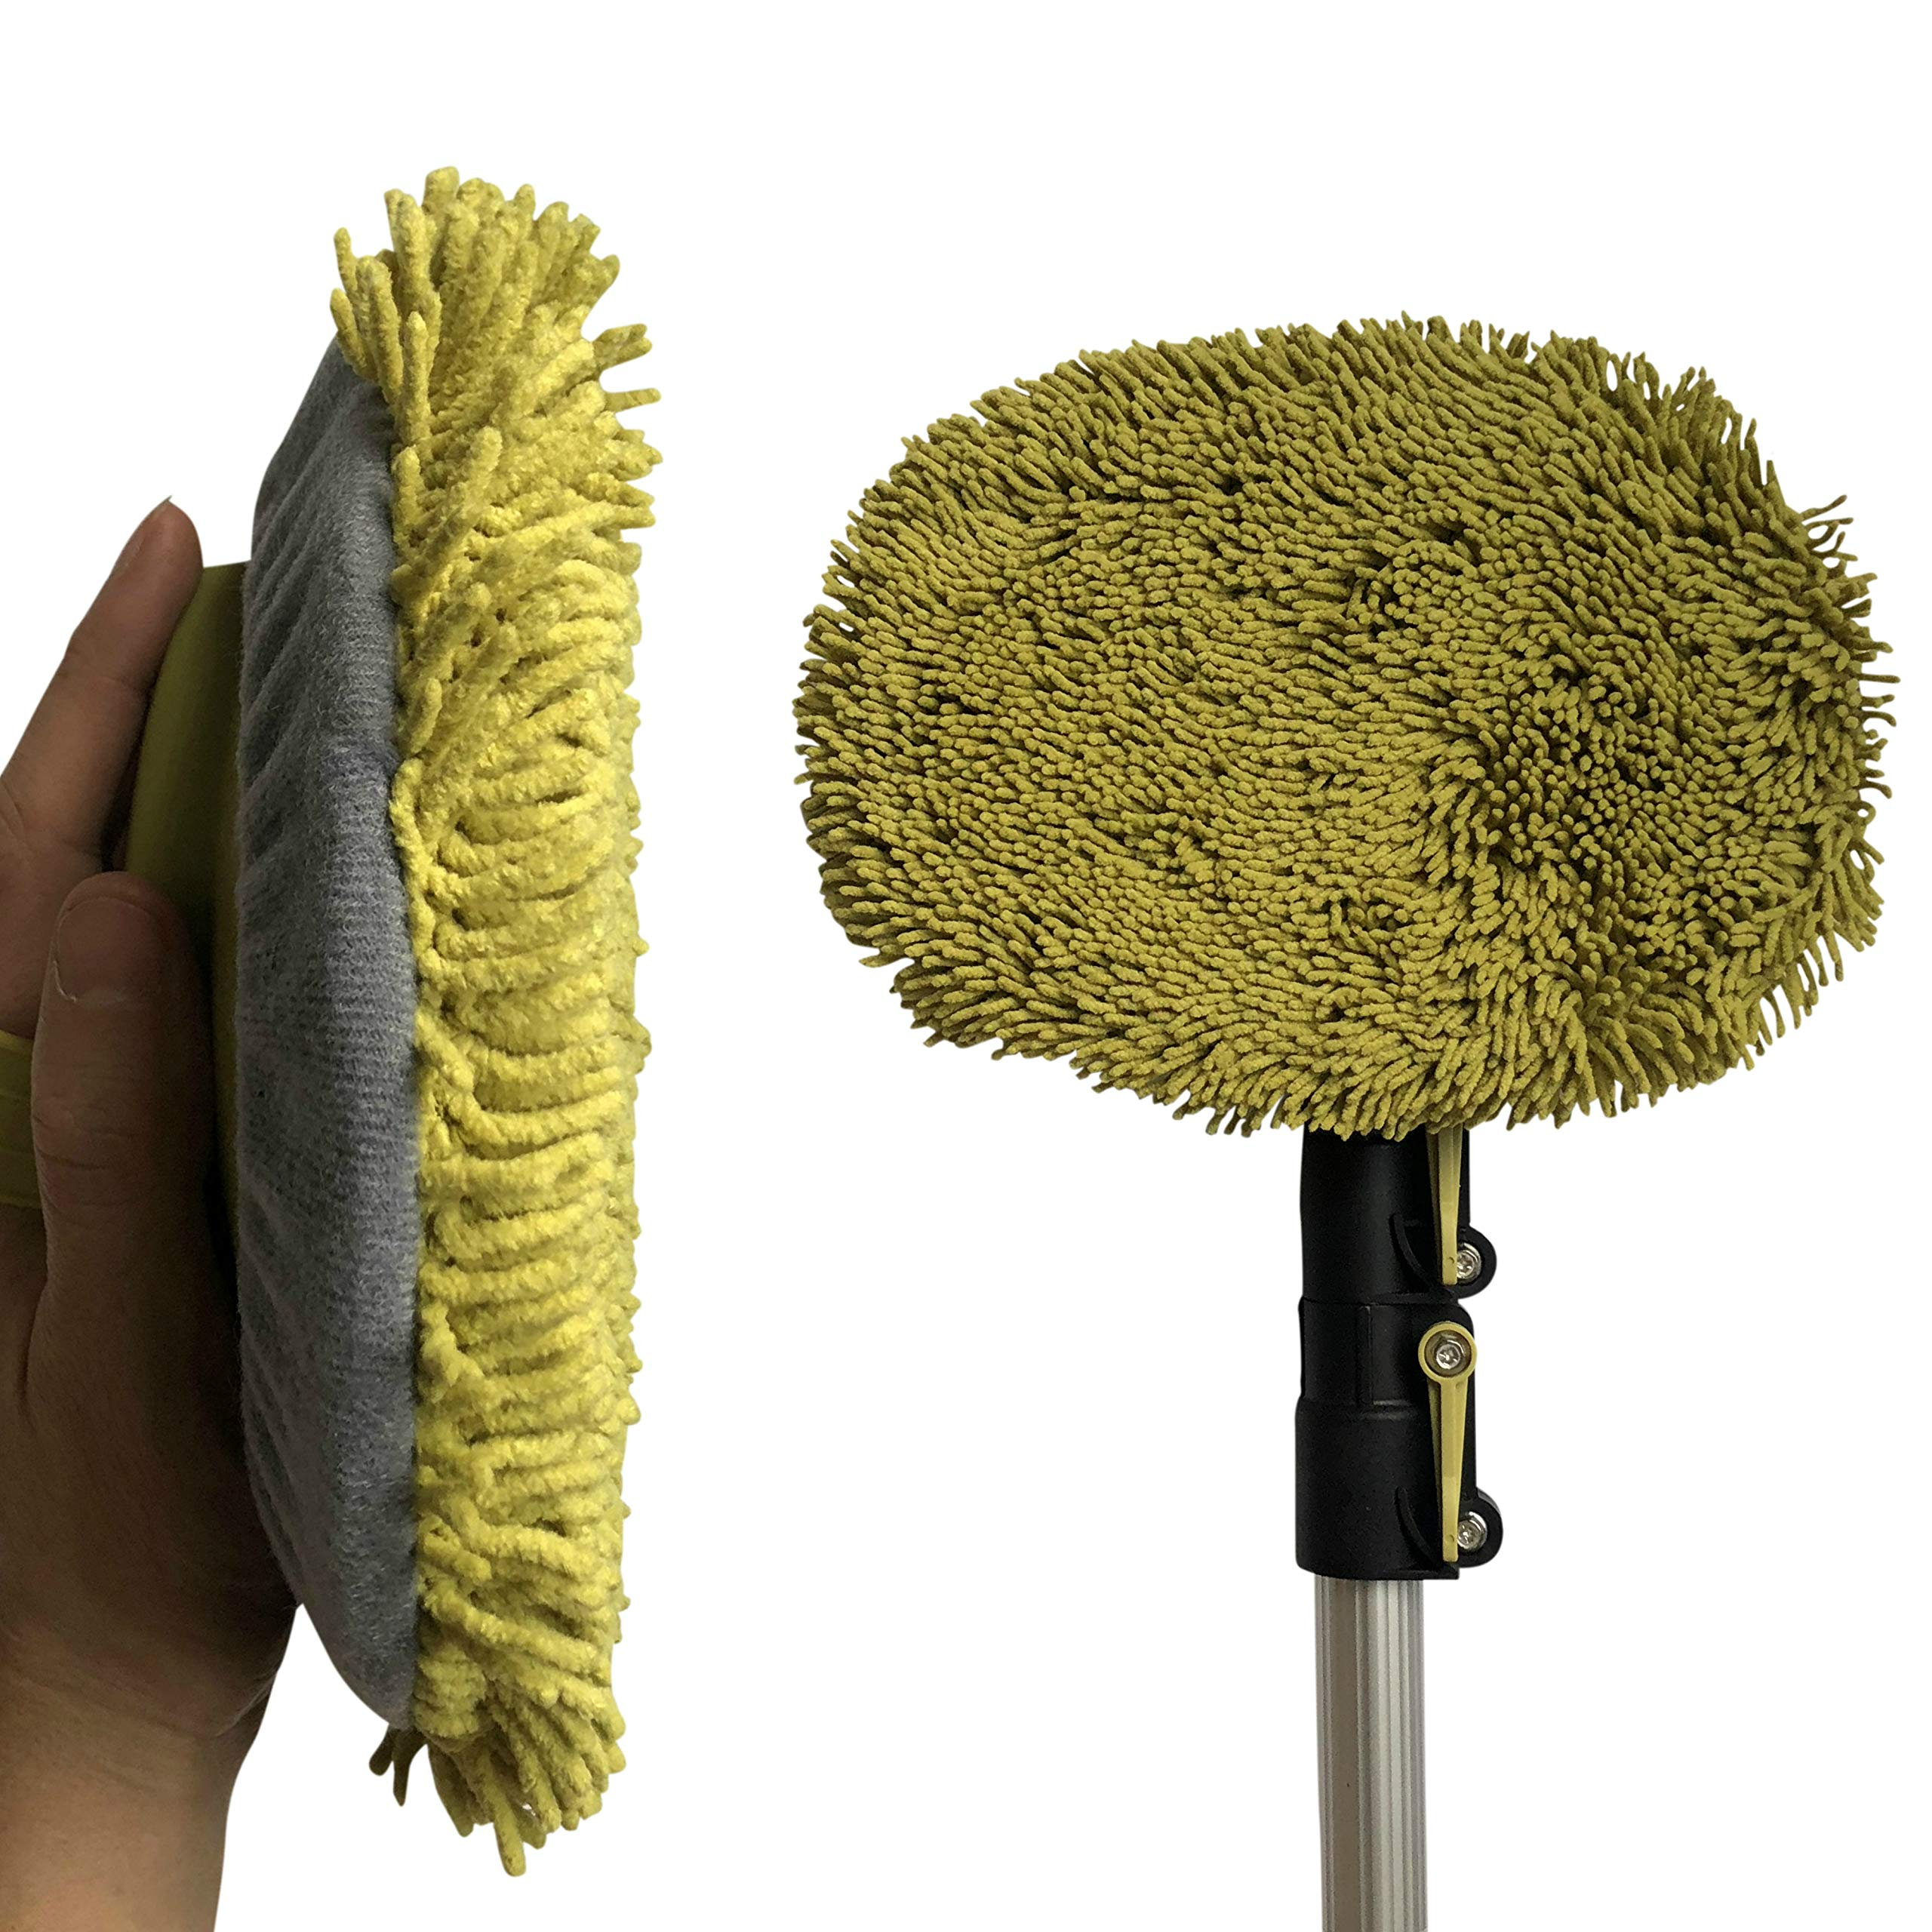 DocaPole 5-12 Foot Wall Duster Extension Pole | Chenille Microfiber Cleaning Head | For Use by Hand or with an Telescopic Pole | High Reach Duster for Walls and High Ceilings | Washable Cleaning Cloth by DOCAZOO